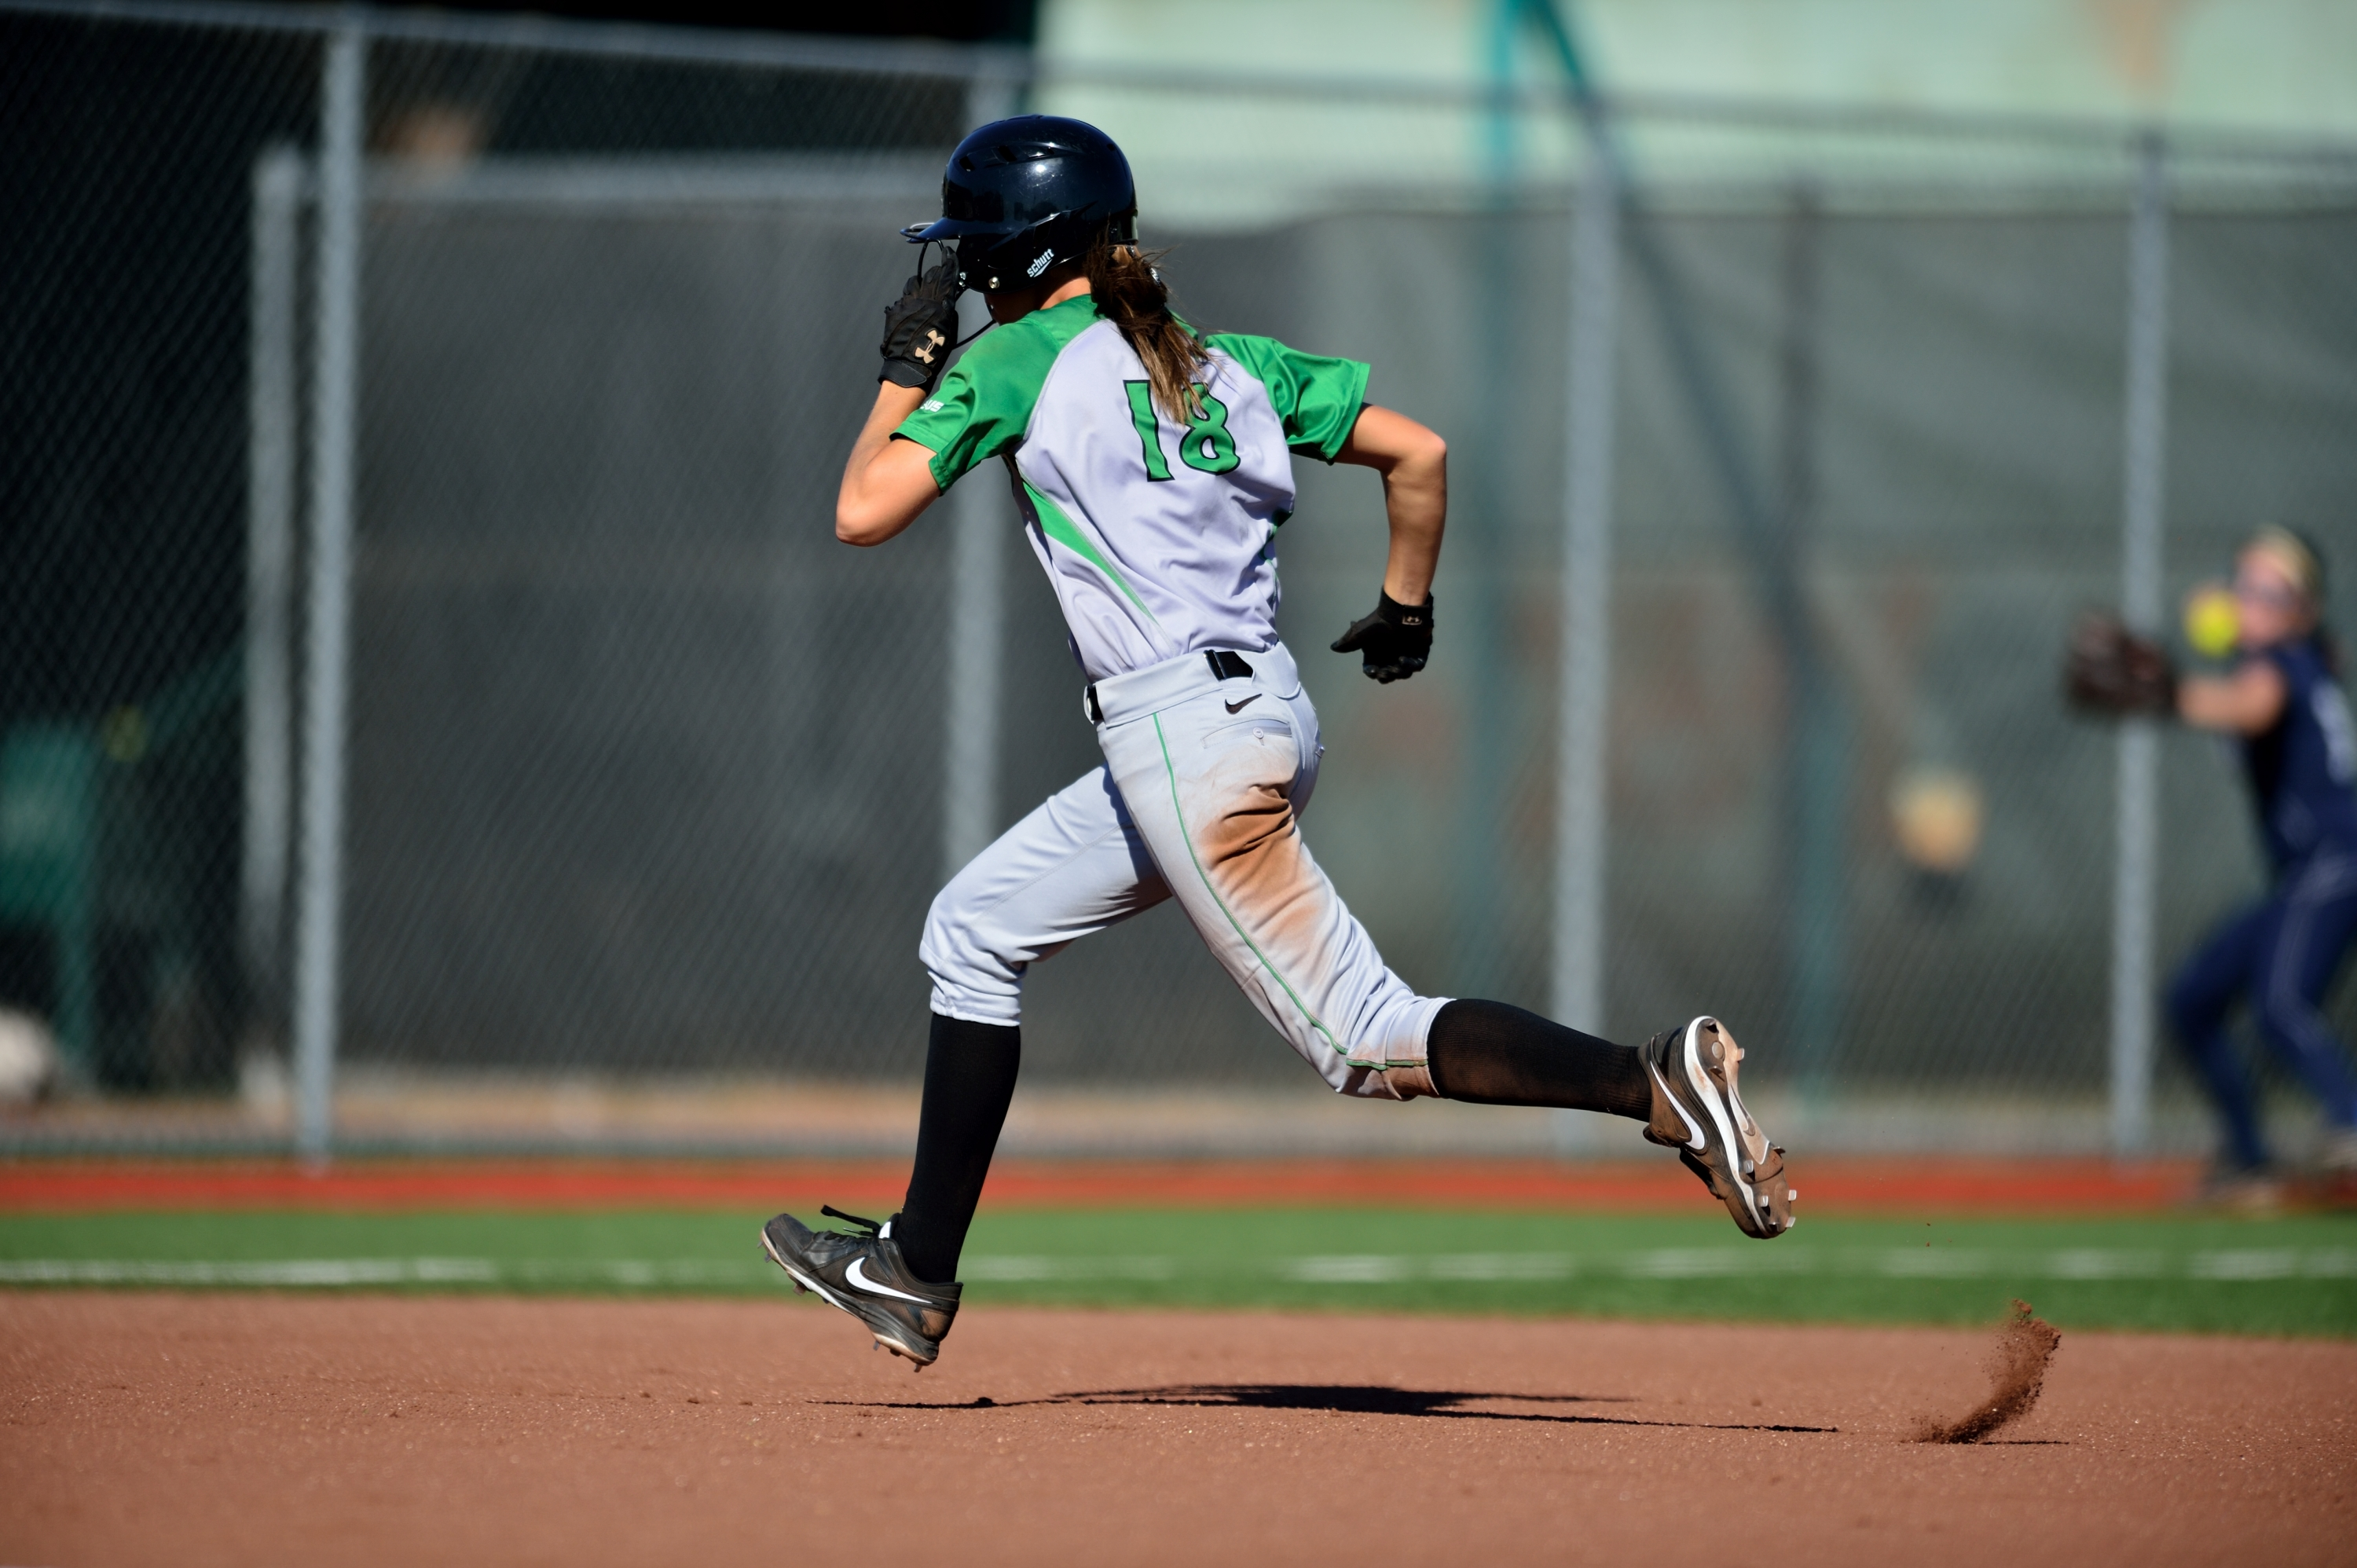 Zerkle hit her first out-of the park ome run Saturday